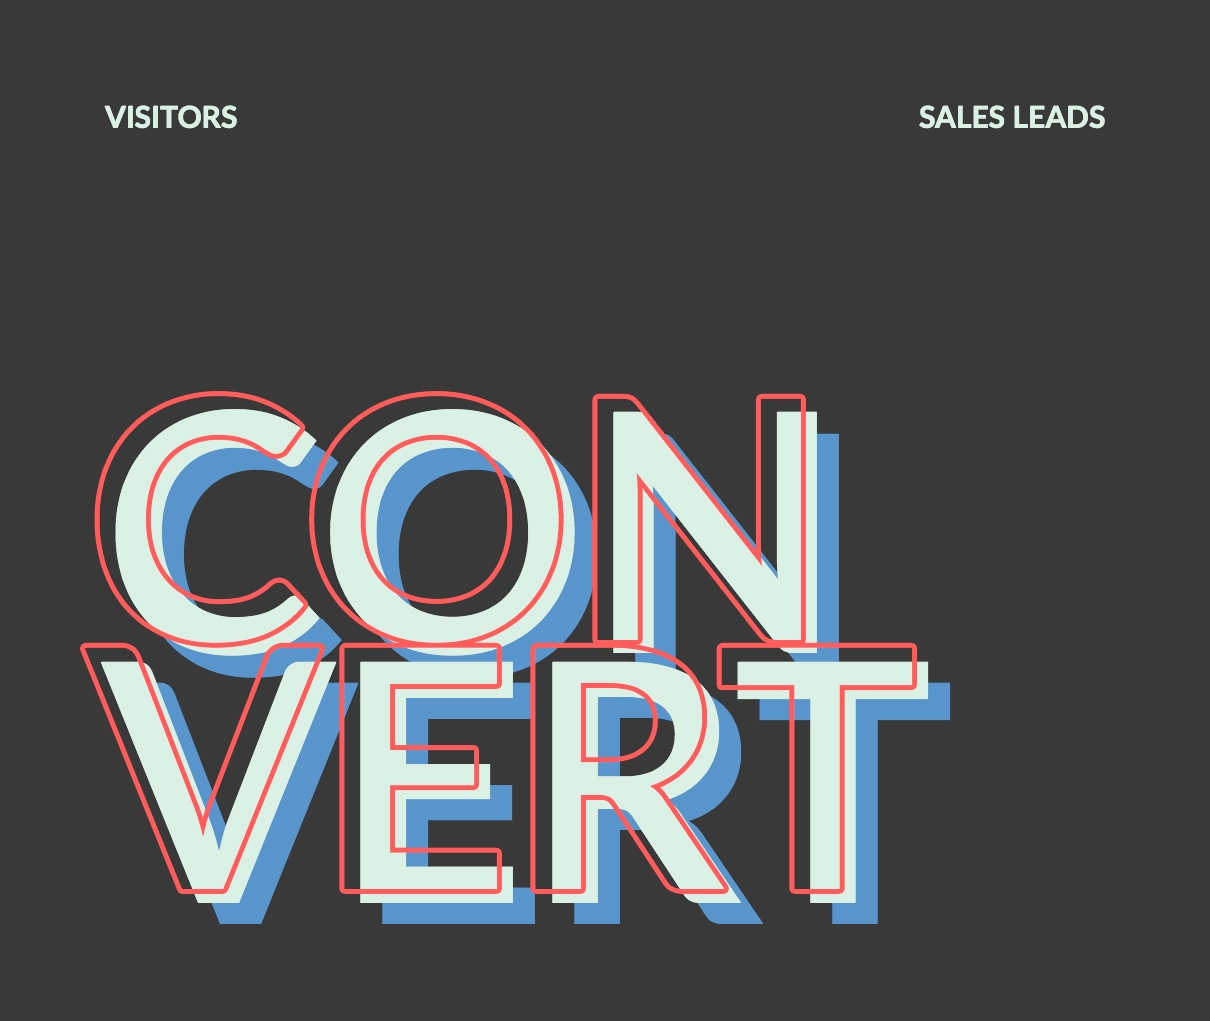 Convert Visitors toVisitors into Marketing and Sales